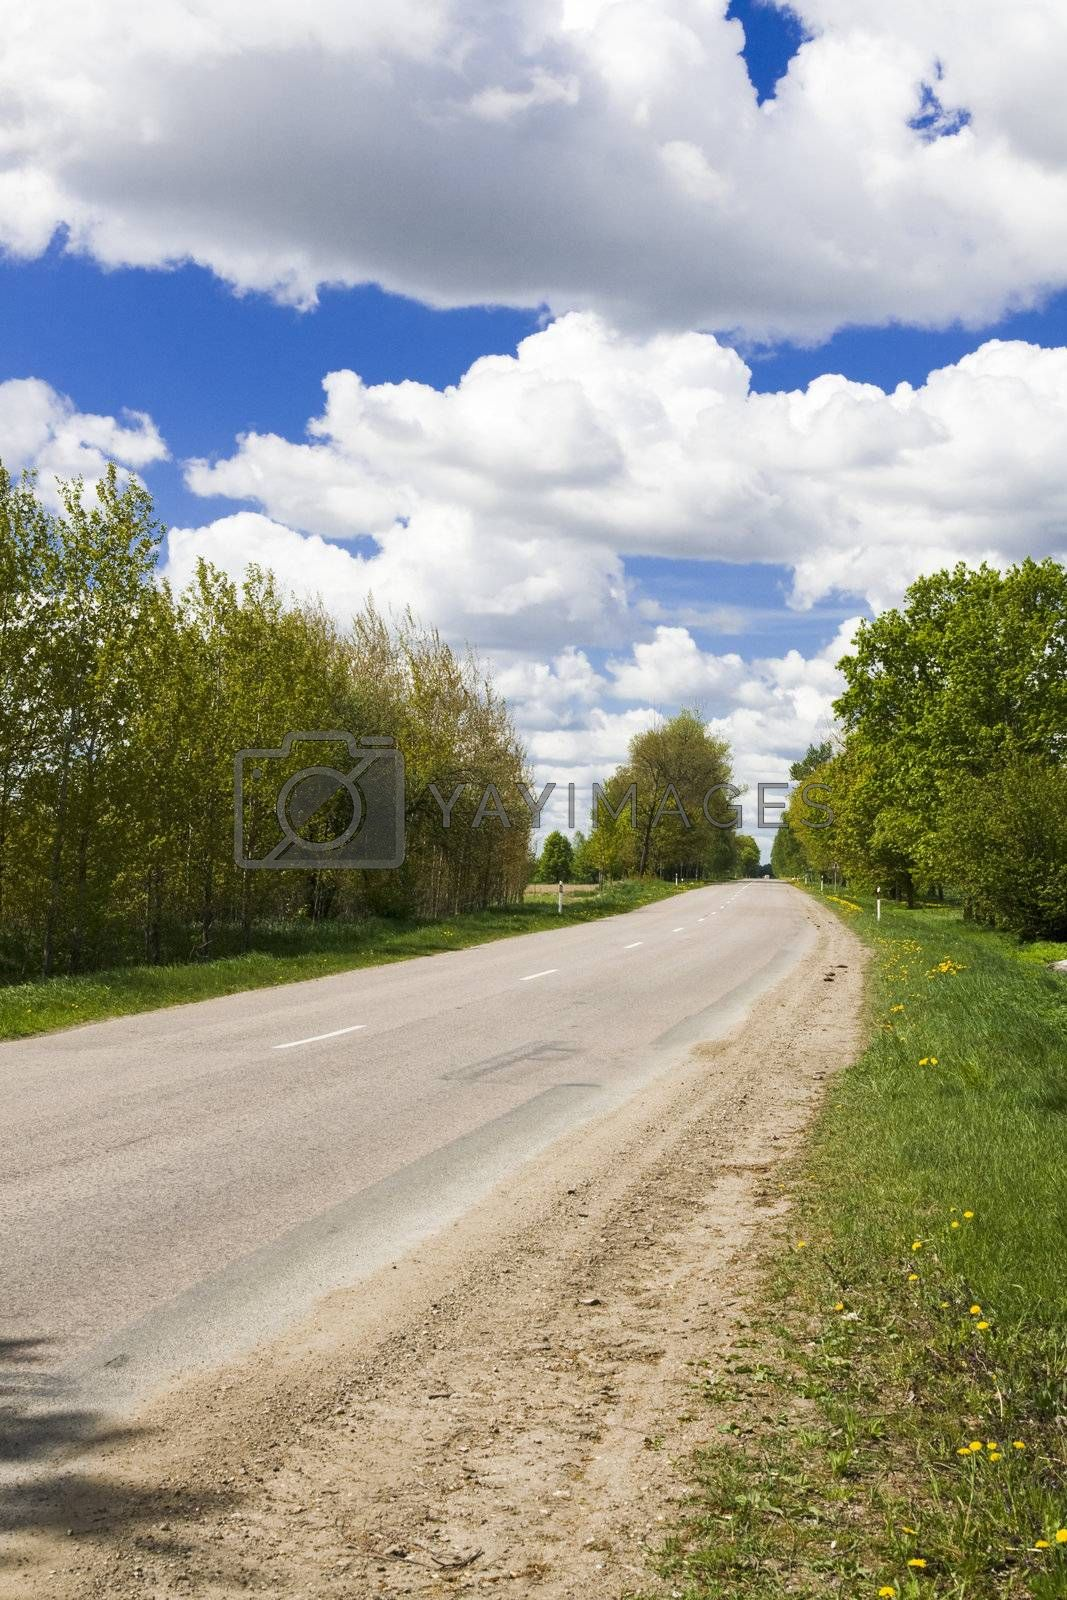 Road to home. Early spring landscape at sunny day